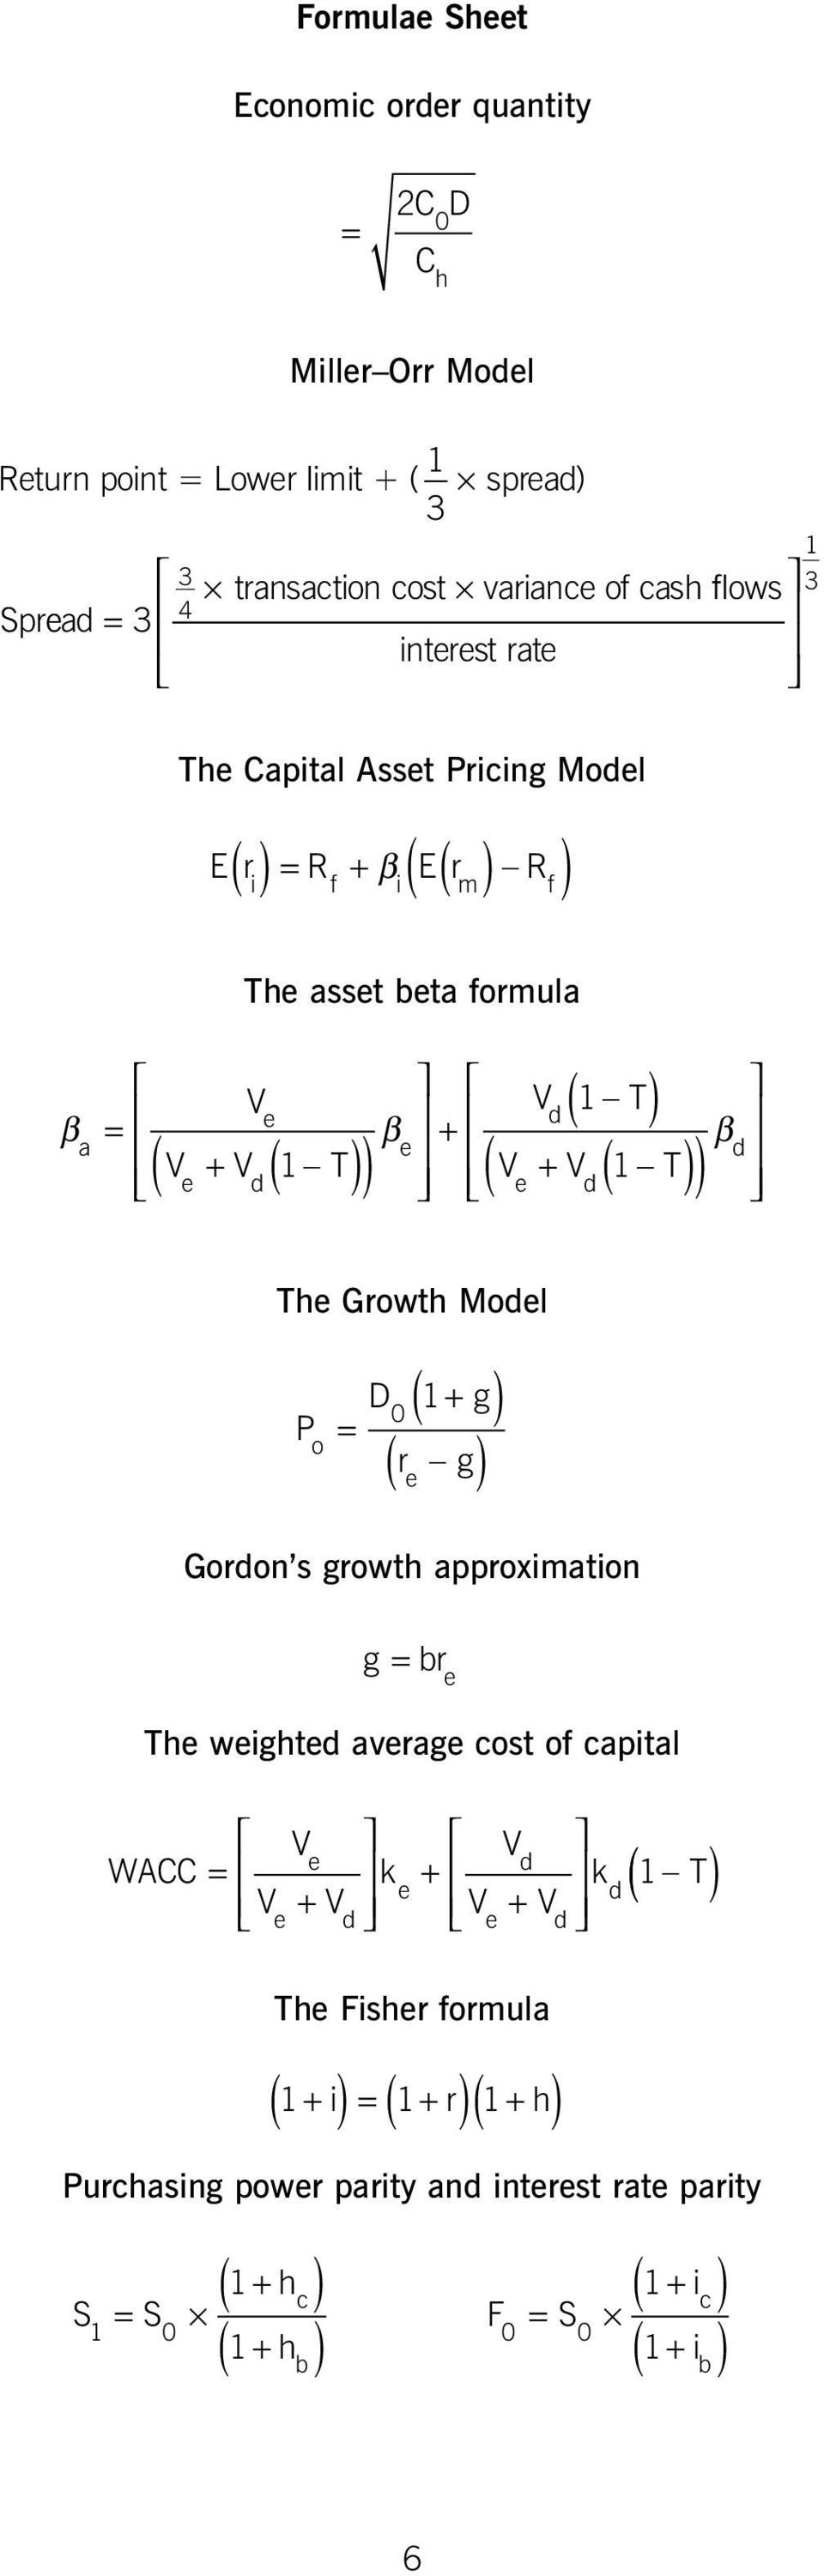 d( )) β d The Growth Model P o ( ) D + g 0 = 1 r g ( e ) Gordon s growth approximation g = br e The weighted average cost of capital V WACC V V k V e d = + V V k 1 T e d +